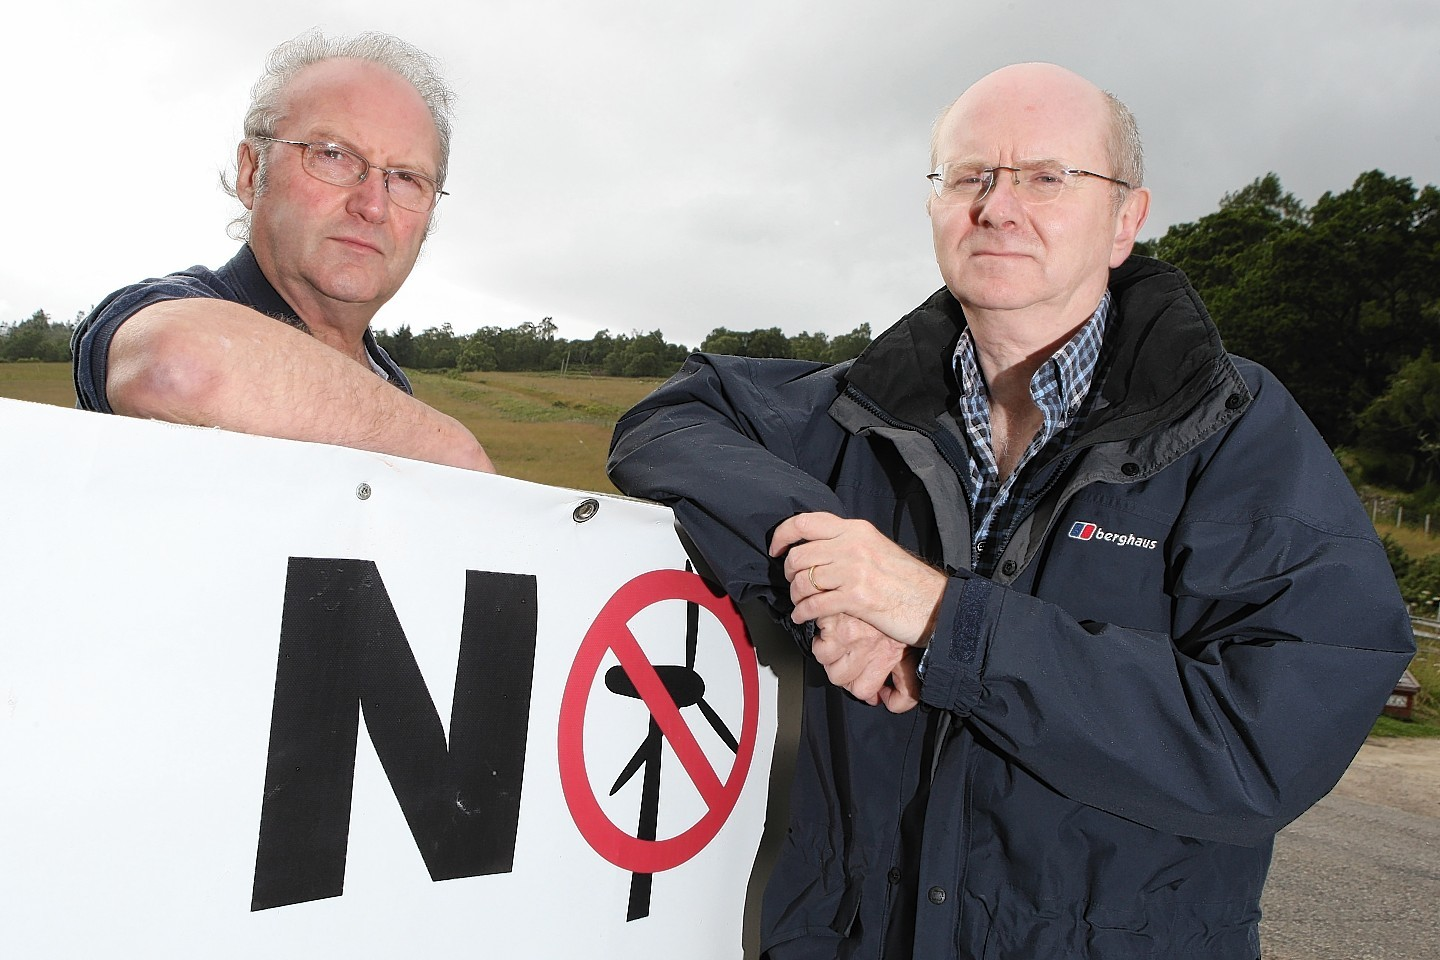 Dan Luscombe and Cliff Green of the Stag protest group.